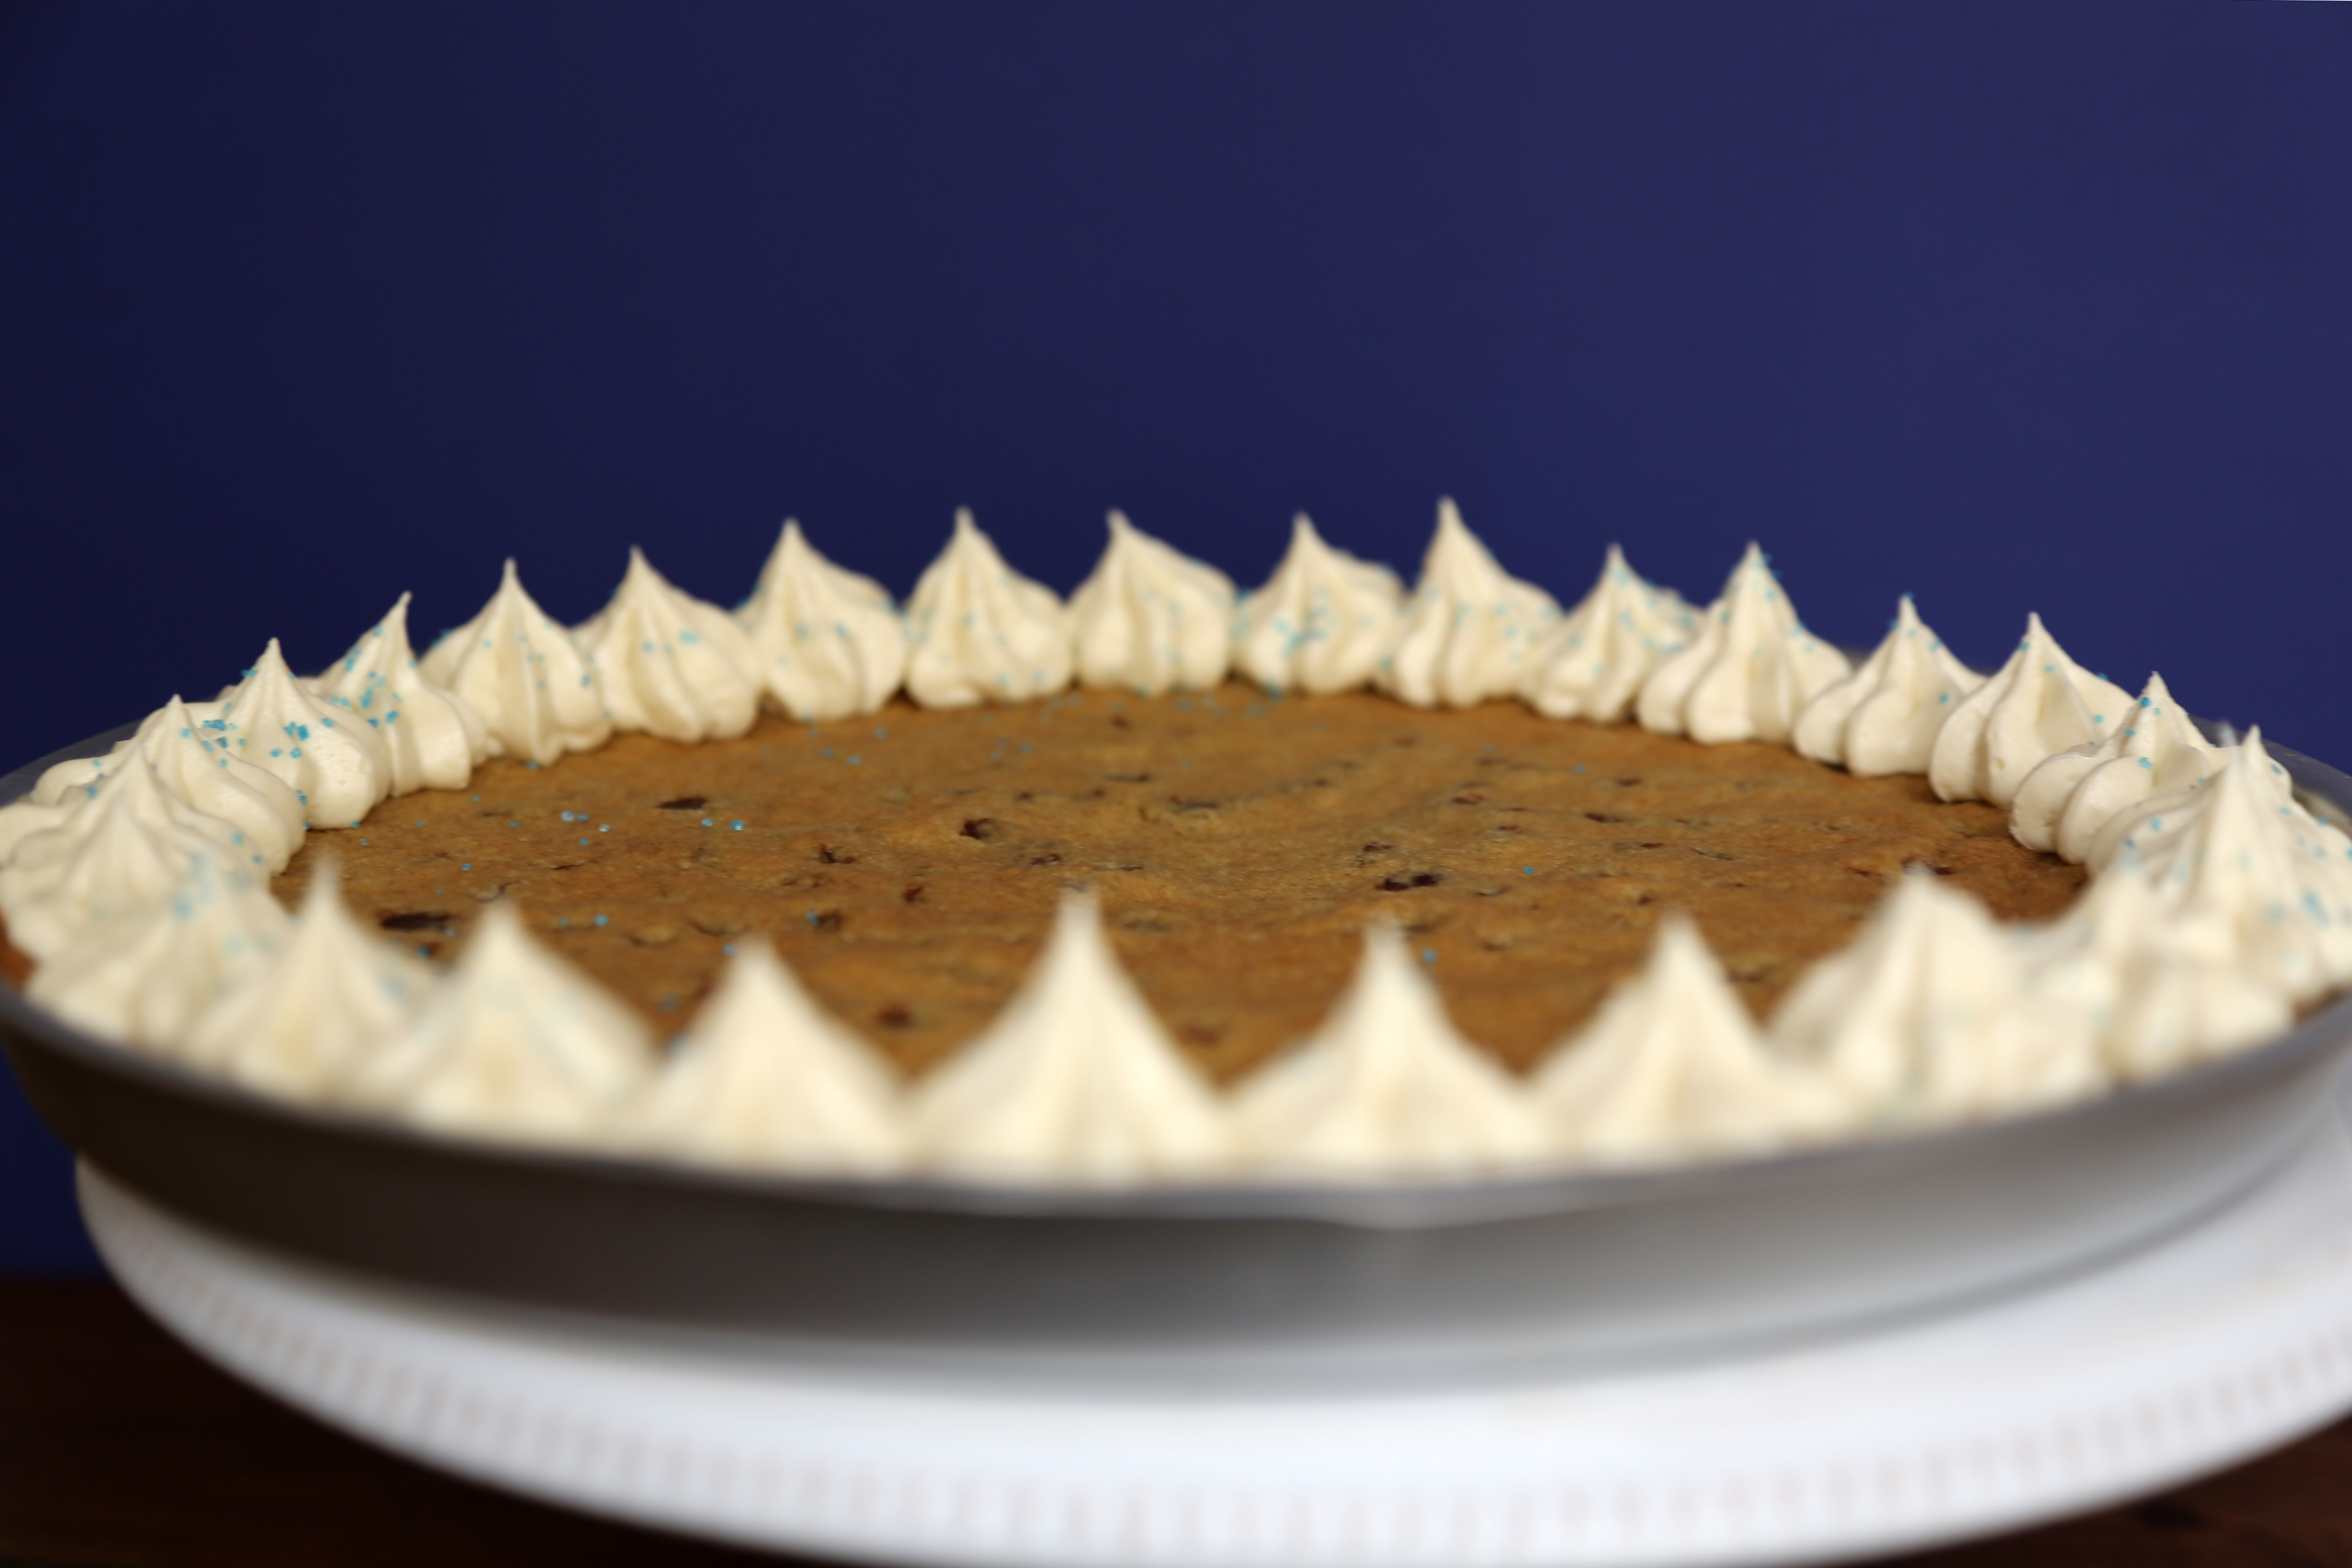 Chocolate Chip Cookie Cake Recipe | POPSUGAR Food